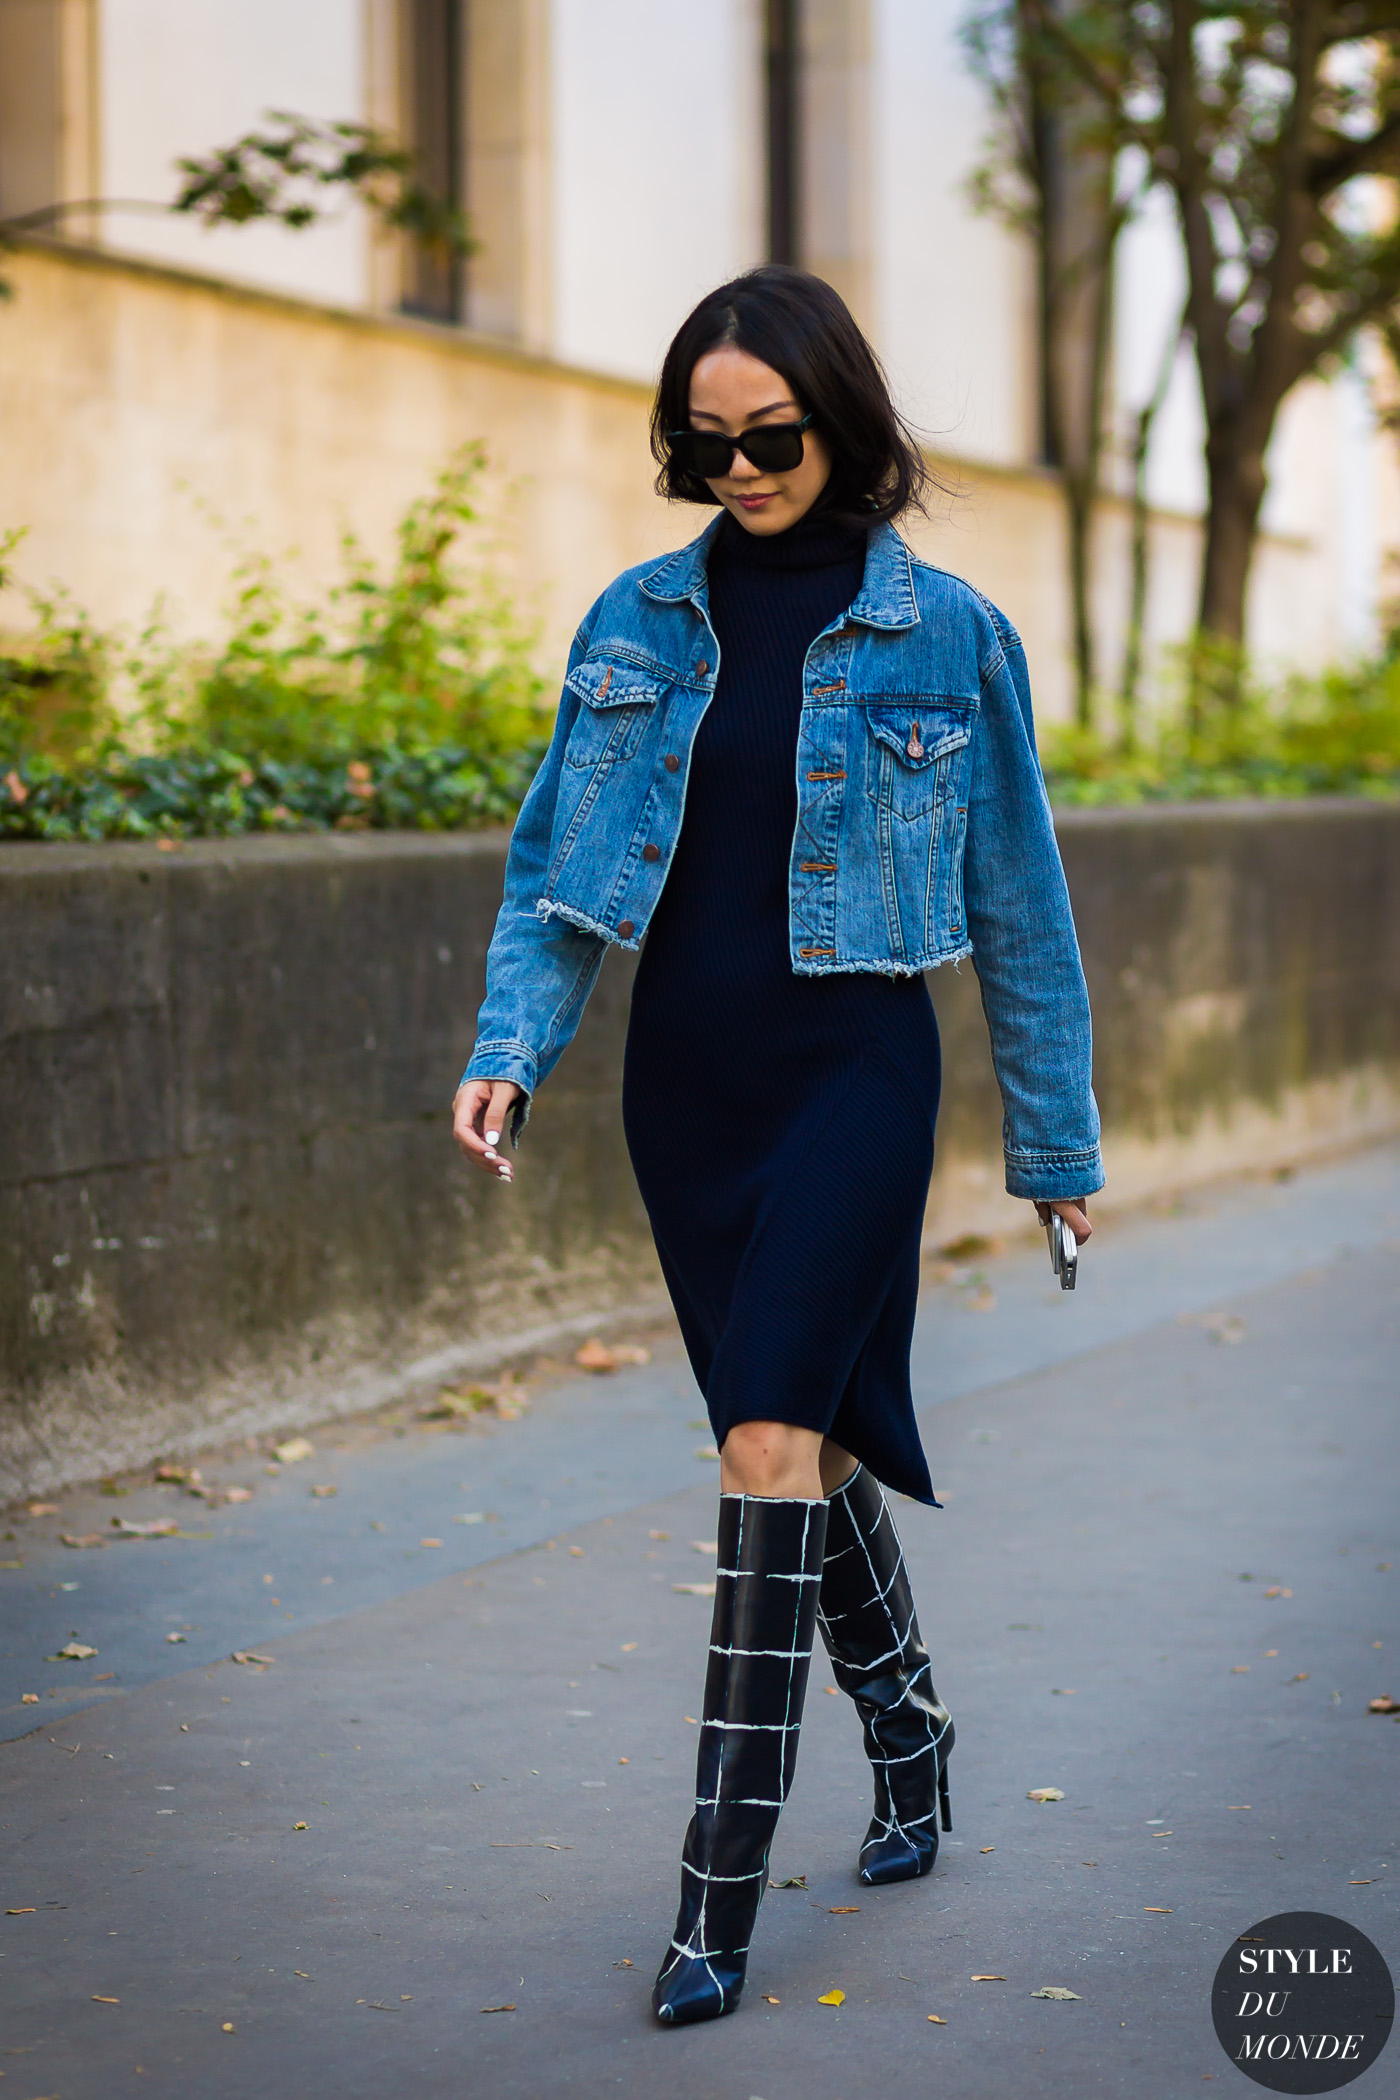 Yoyo Cao by STYLEDUMONDE Street Style Fashion Photography0E2A3613